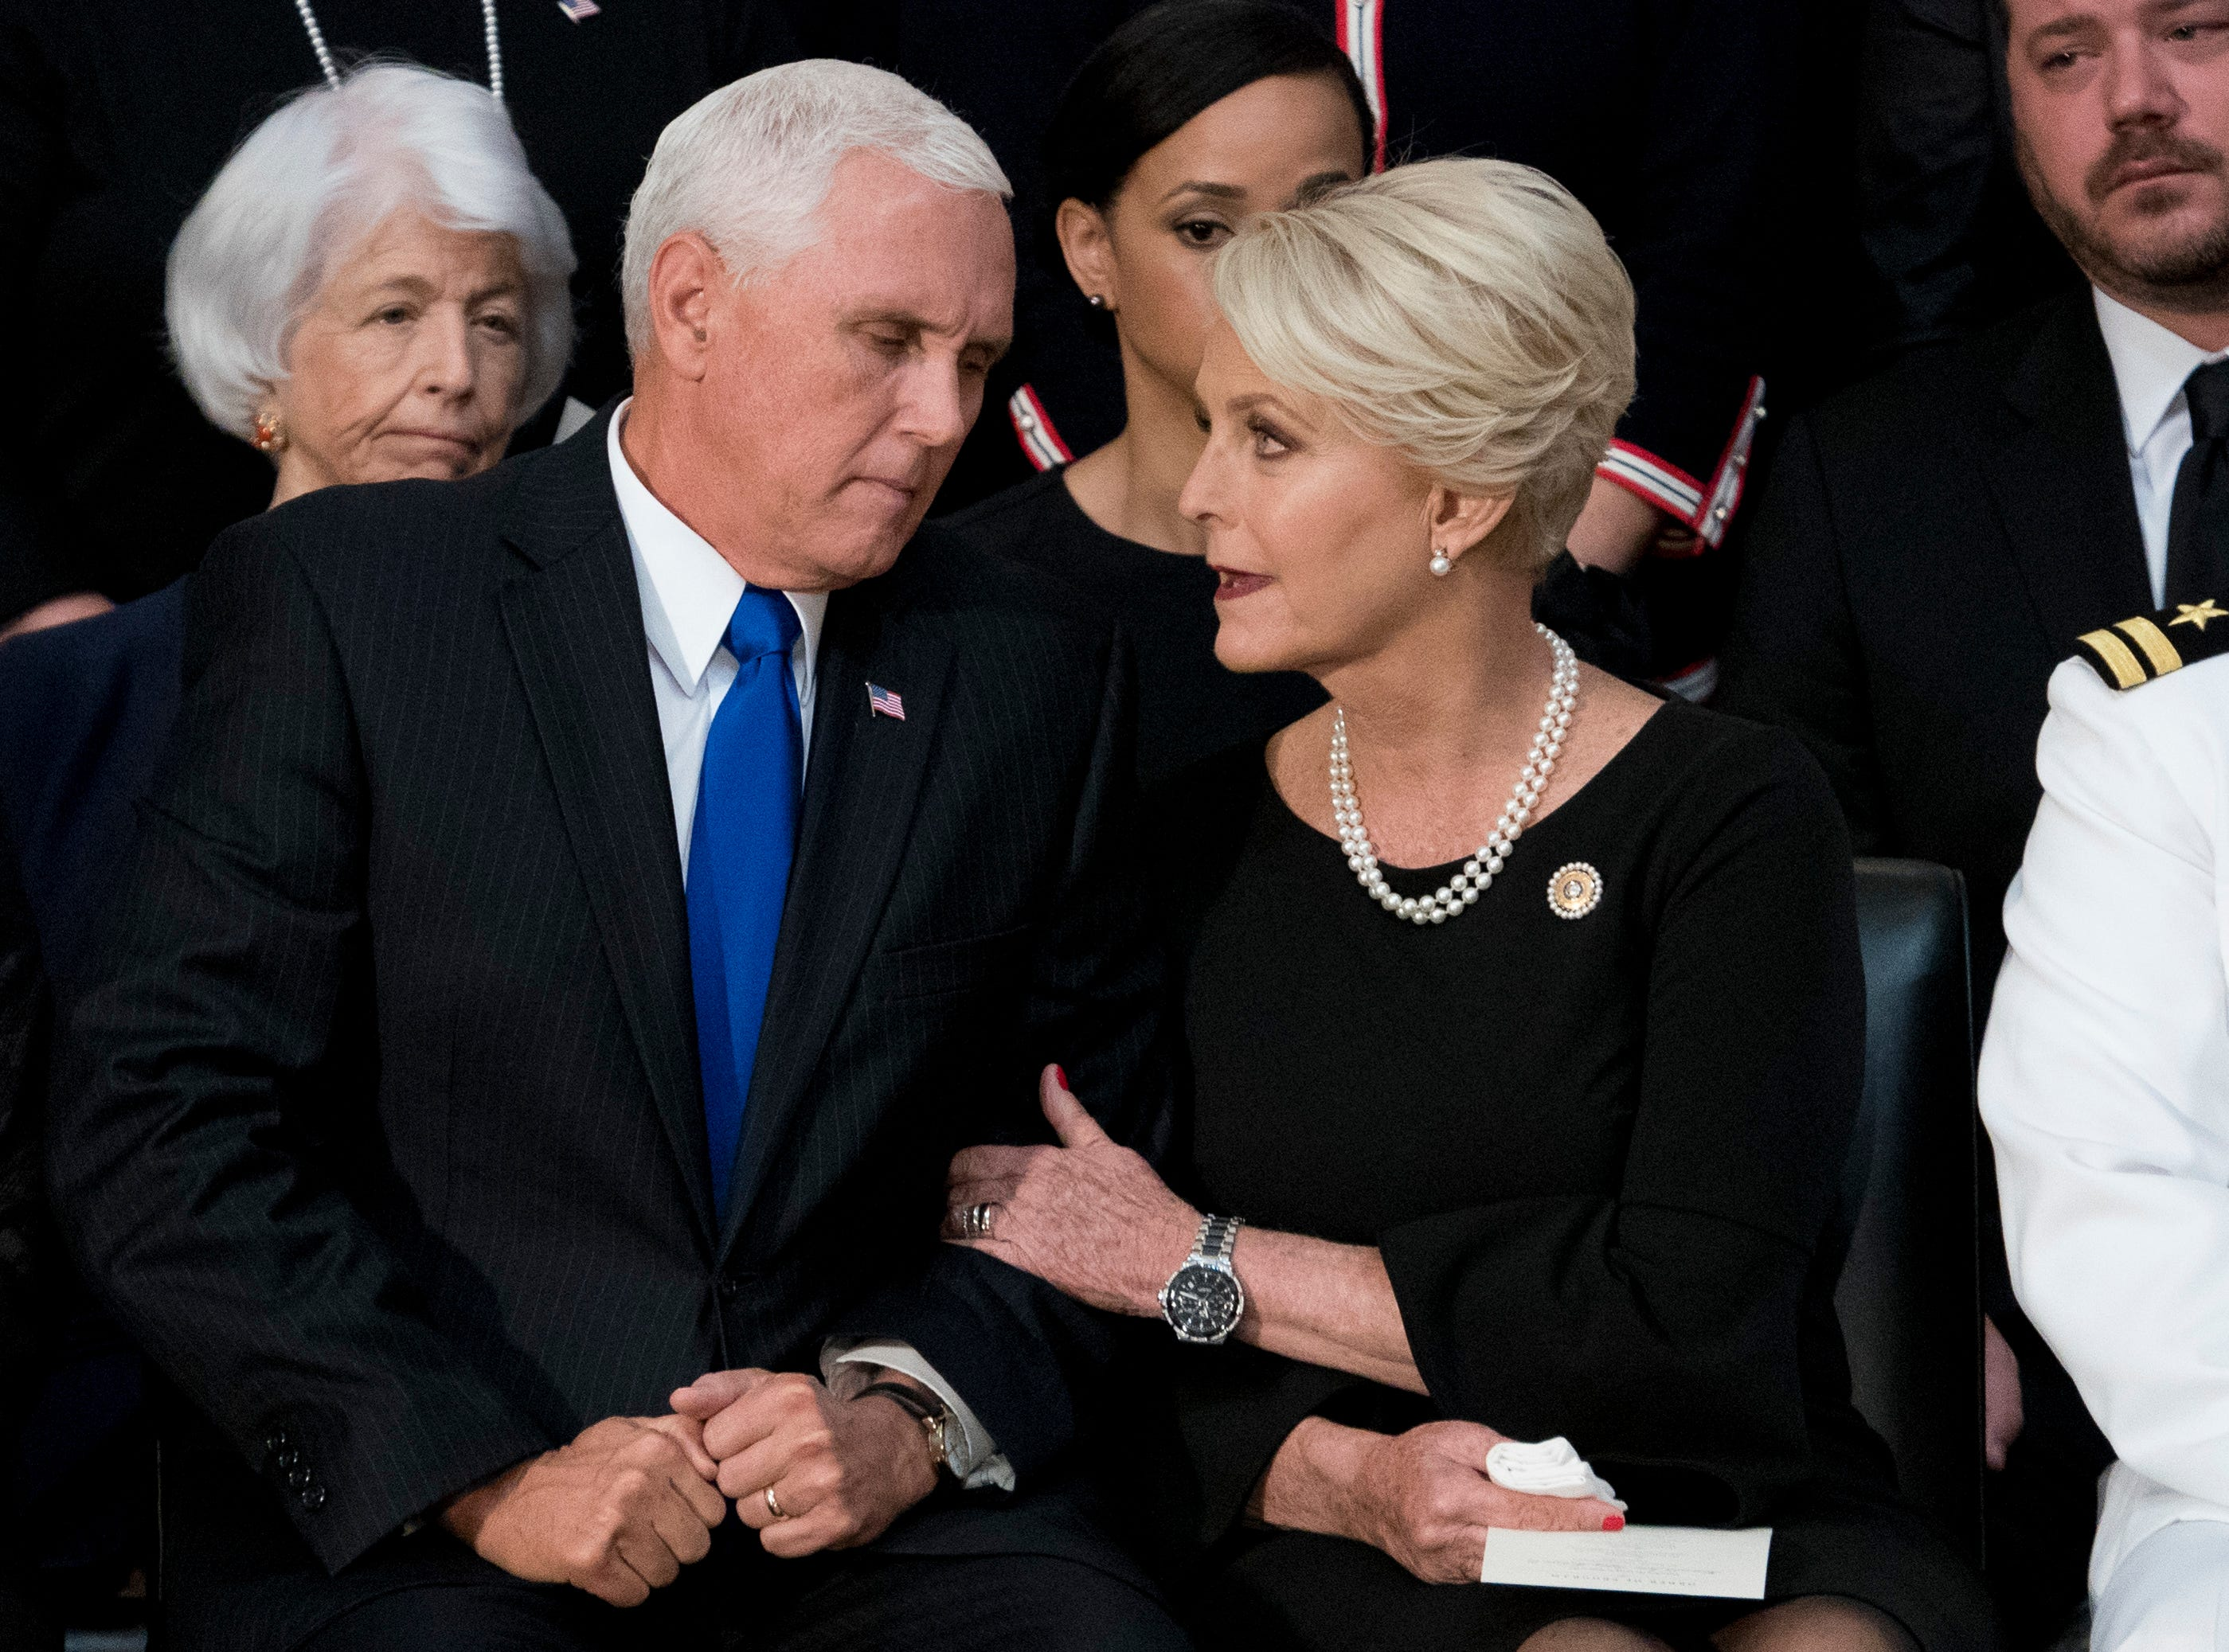 Cindy McCain, wife of Sen. John McCain, R-Ariz., right, talks with Vice President Mike Pence, left, after he speaks at a ceremony for John McCain as he lies in state in the Rotunda of the U.S. Capitol, Friday, Aug. 31, 2018, in Washington. (AP Photo/Andrew Harnik, Pool)